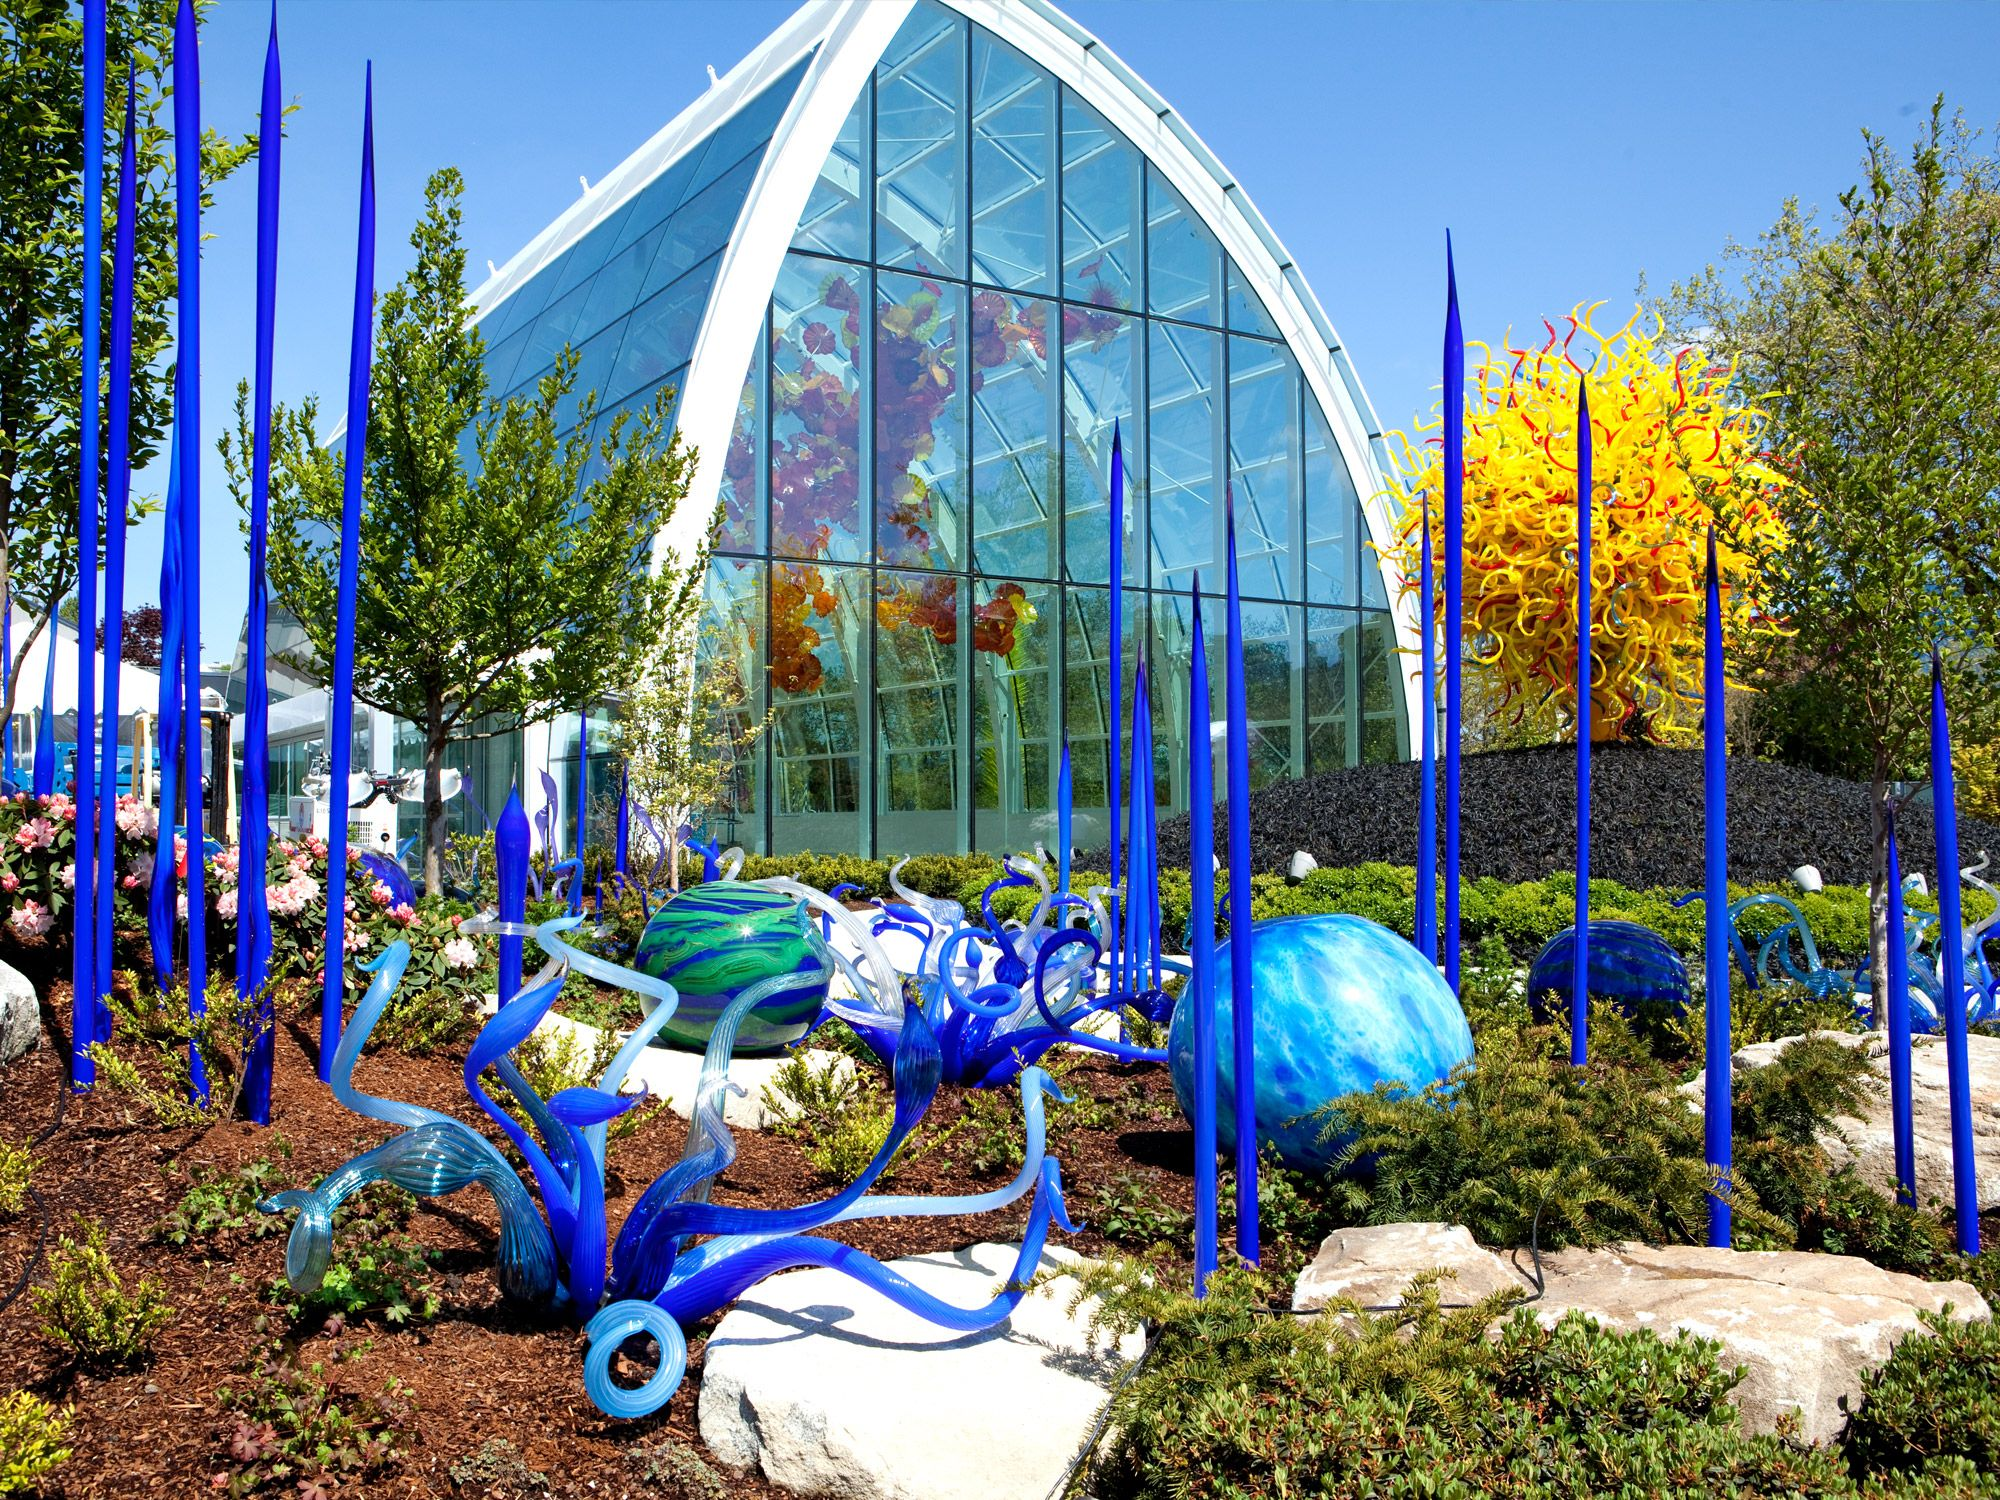 located at seattle center chihuly garden and glass includes an exhibition hall the centerpiece glasshouse and a lush garden - Chihuly Garden And Glass Seattle